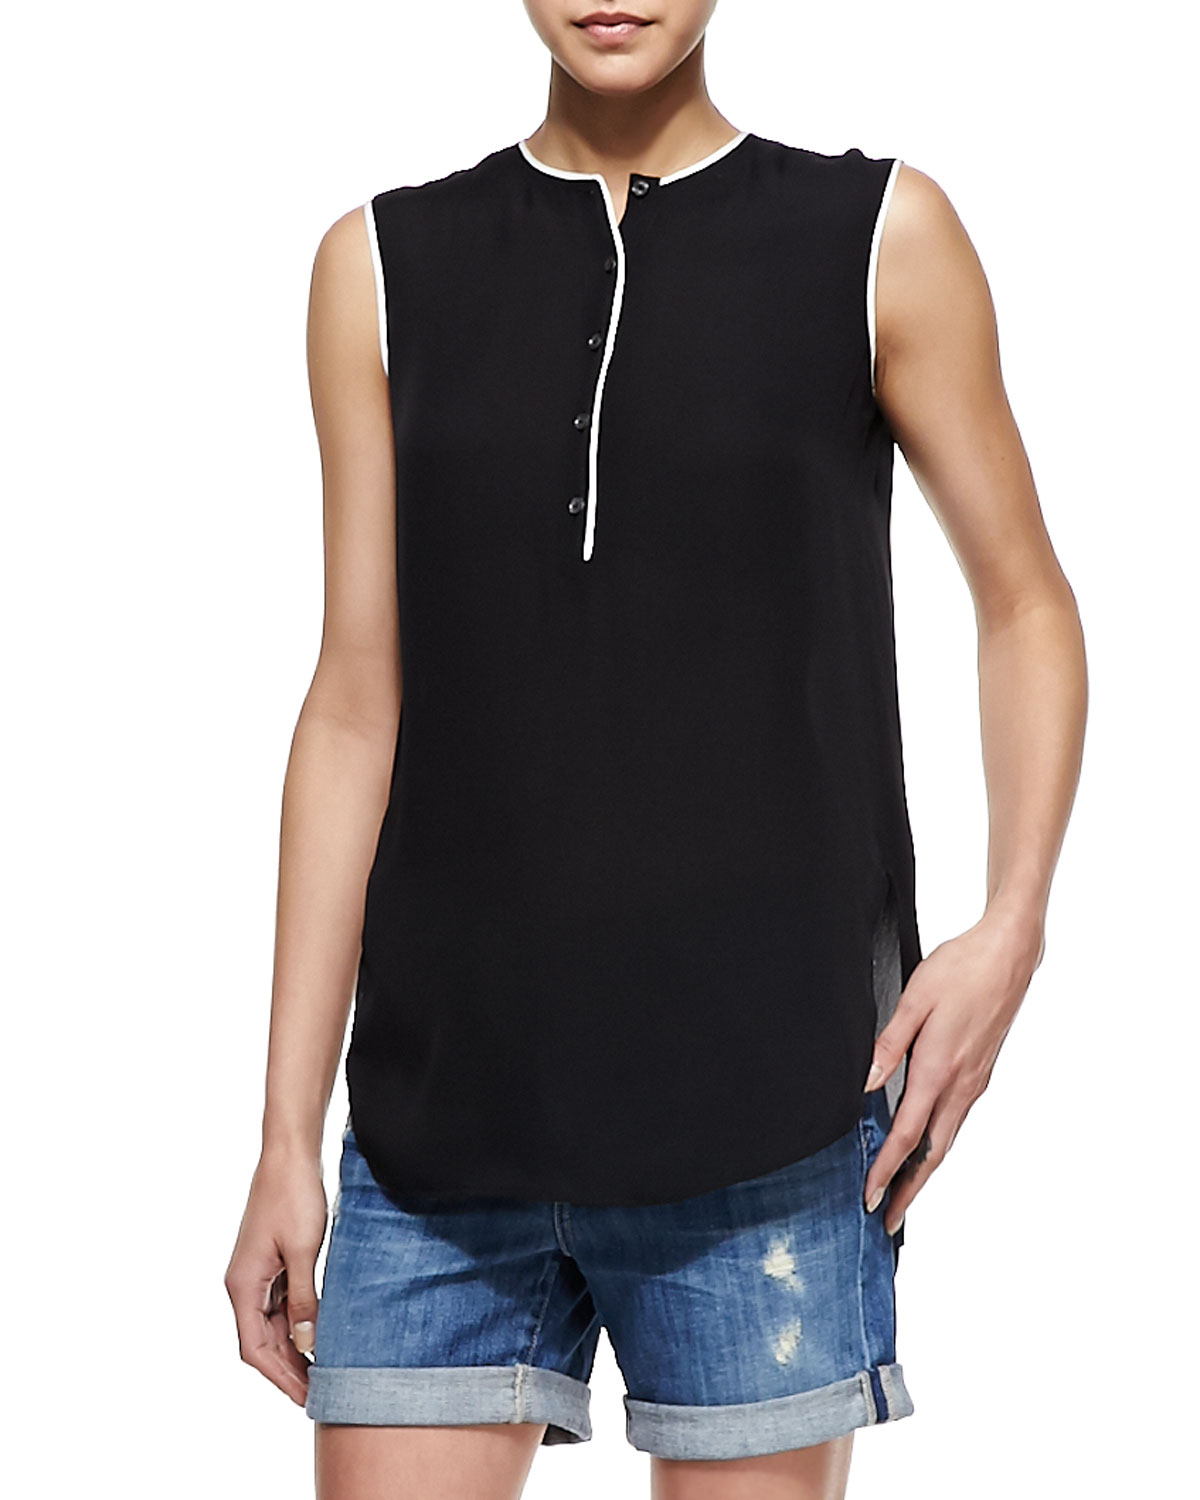 Equipment blouse coupon code